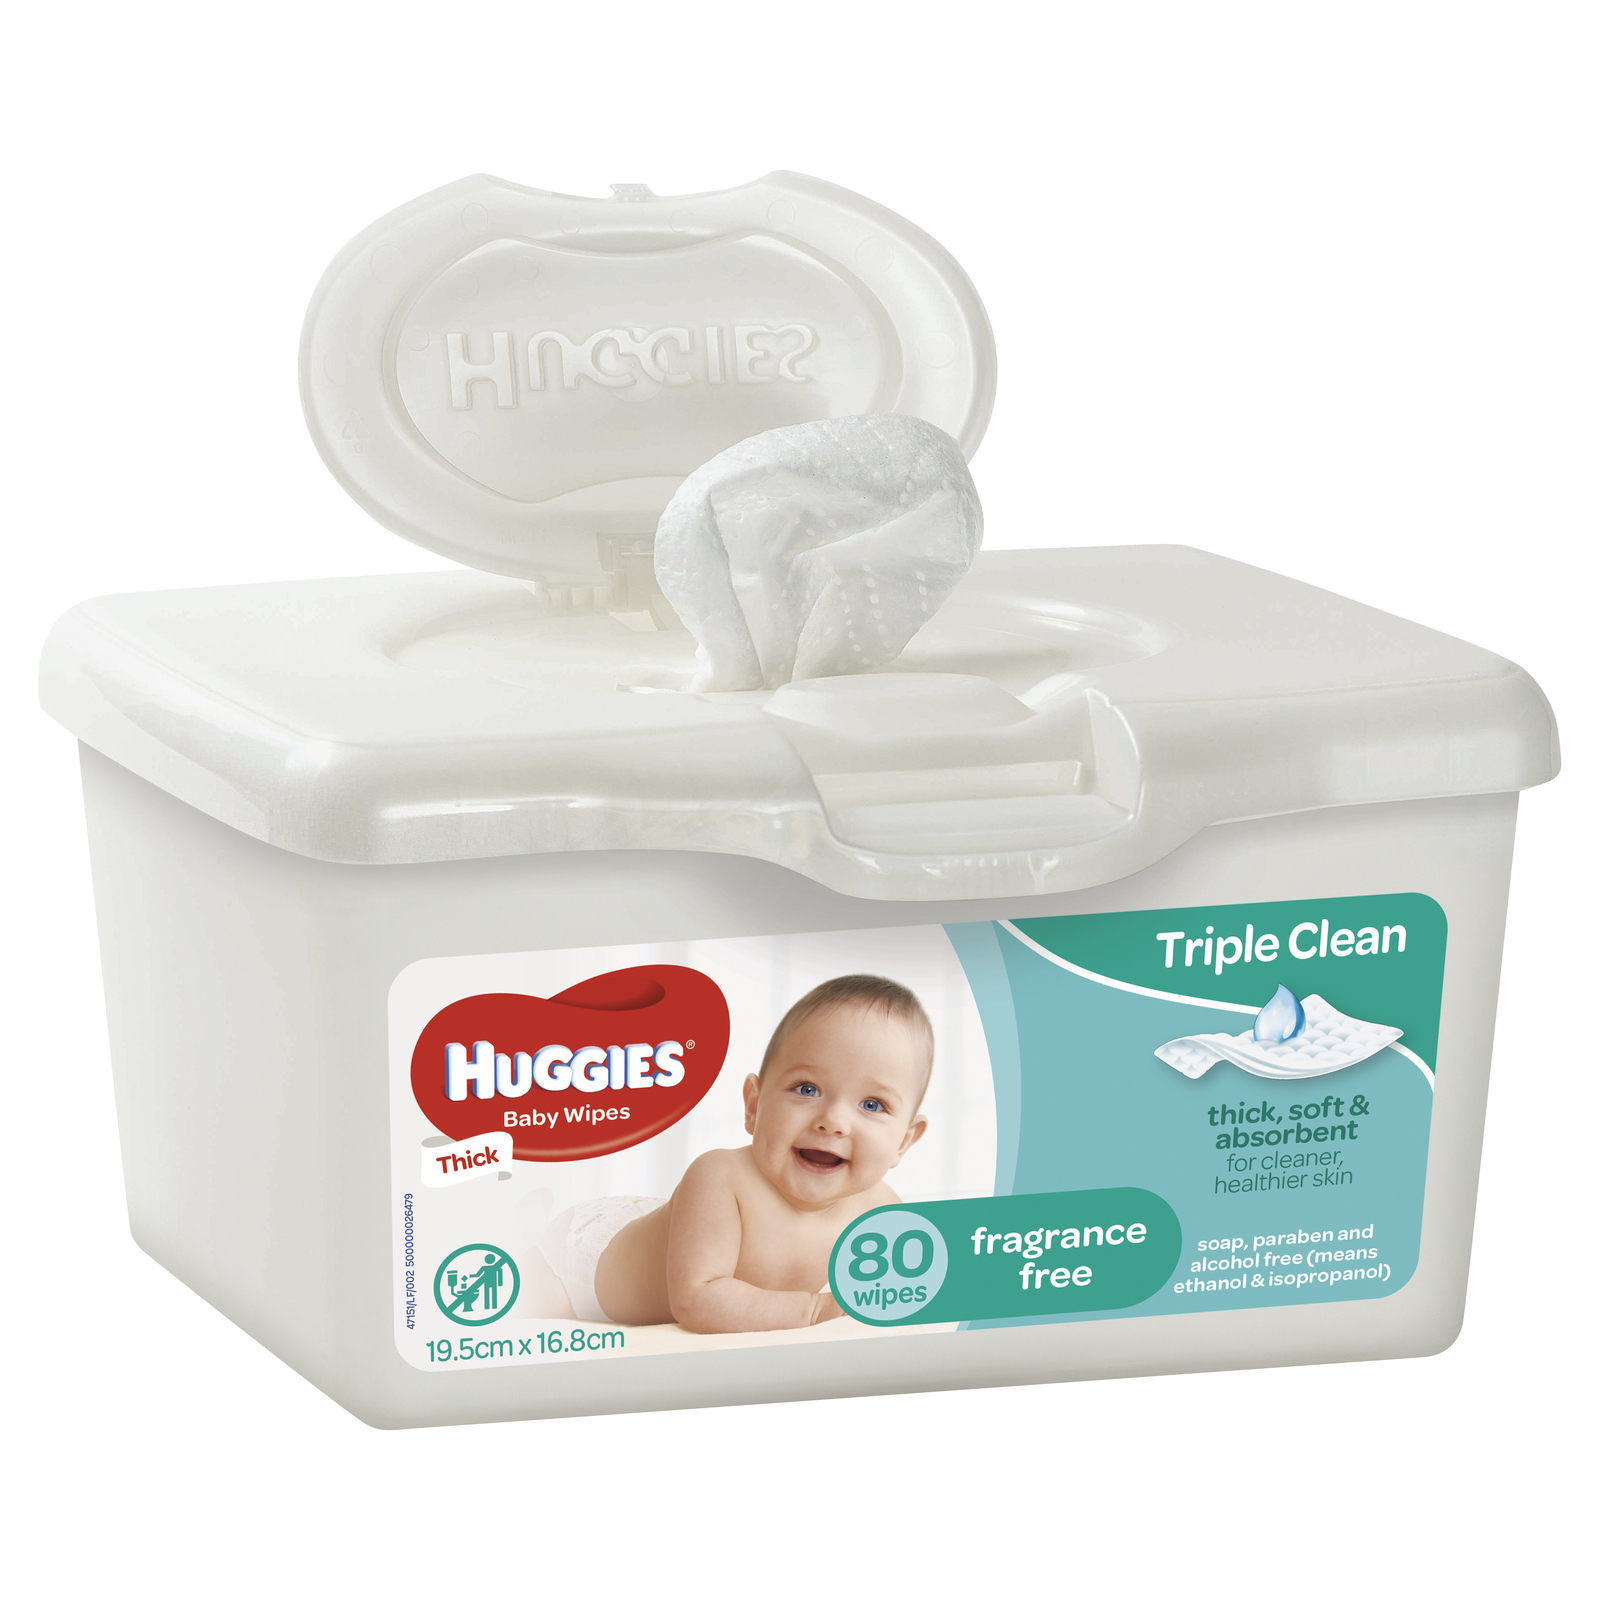 Huggies Baby Wipes Tub - Fragrance Free (80 Wipes) image